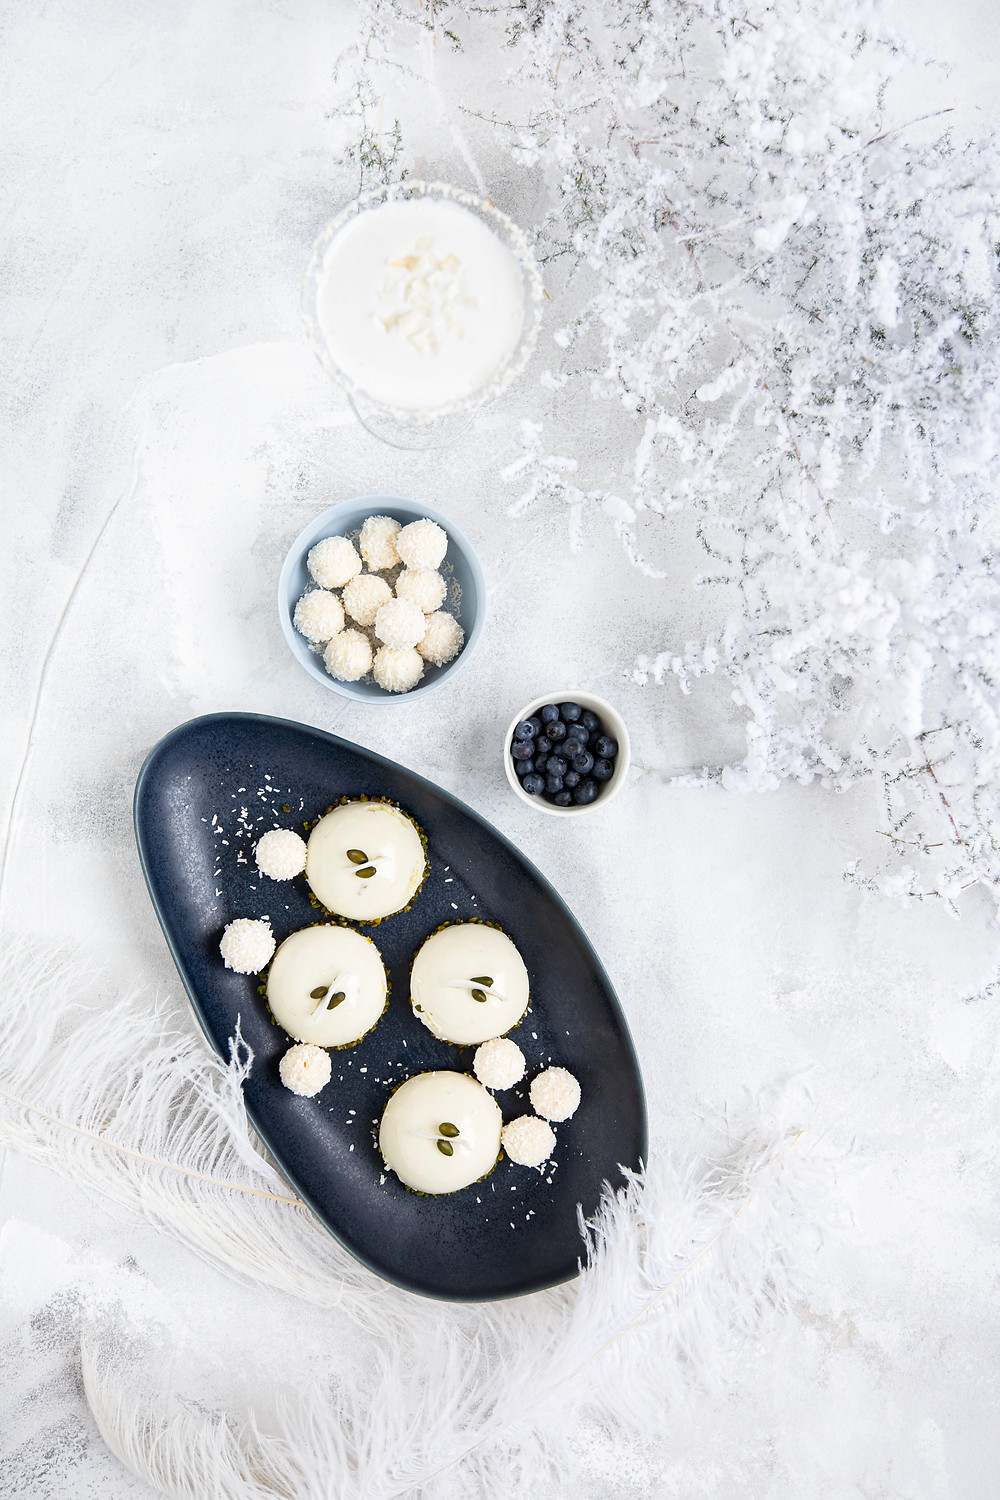 flatlay styling in white and blue